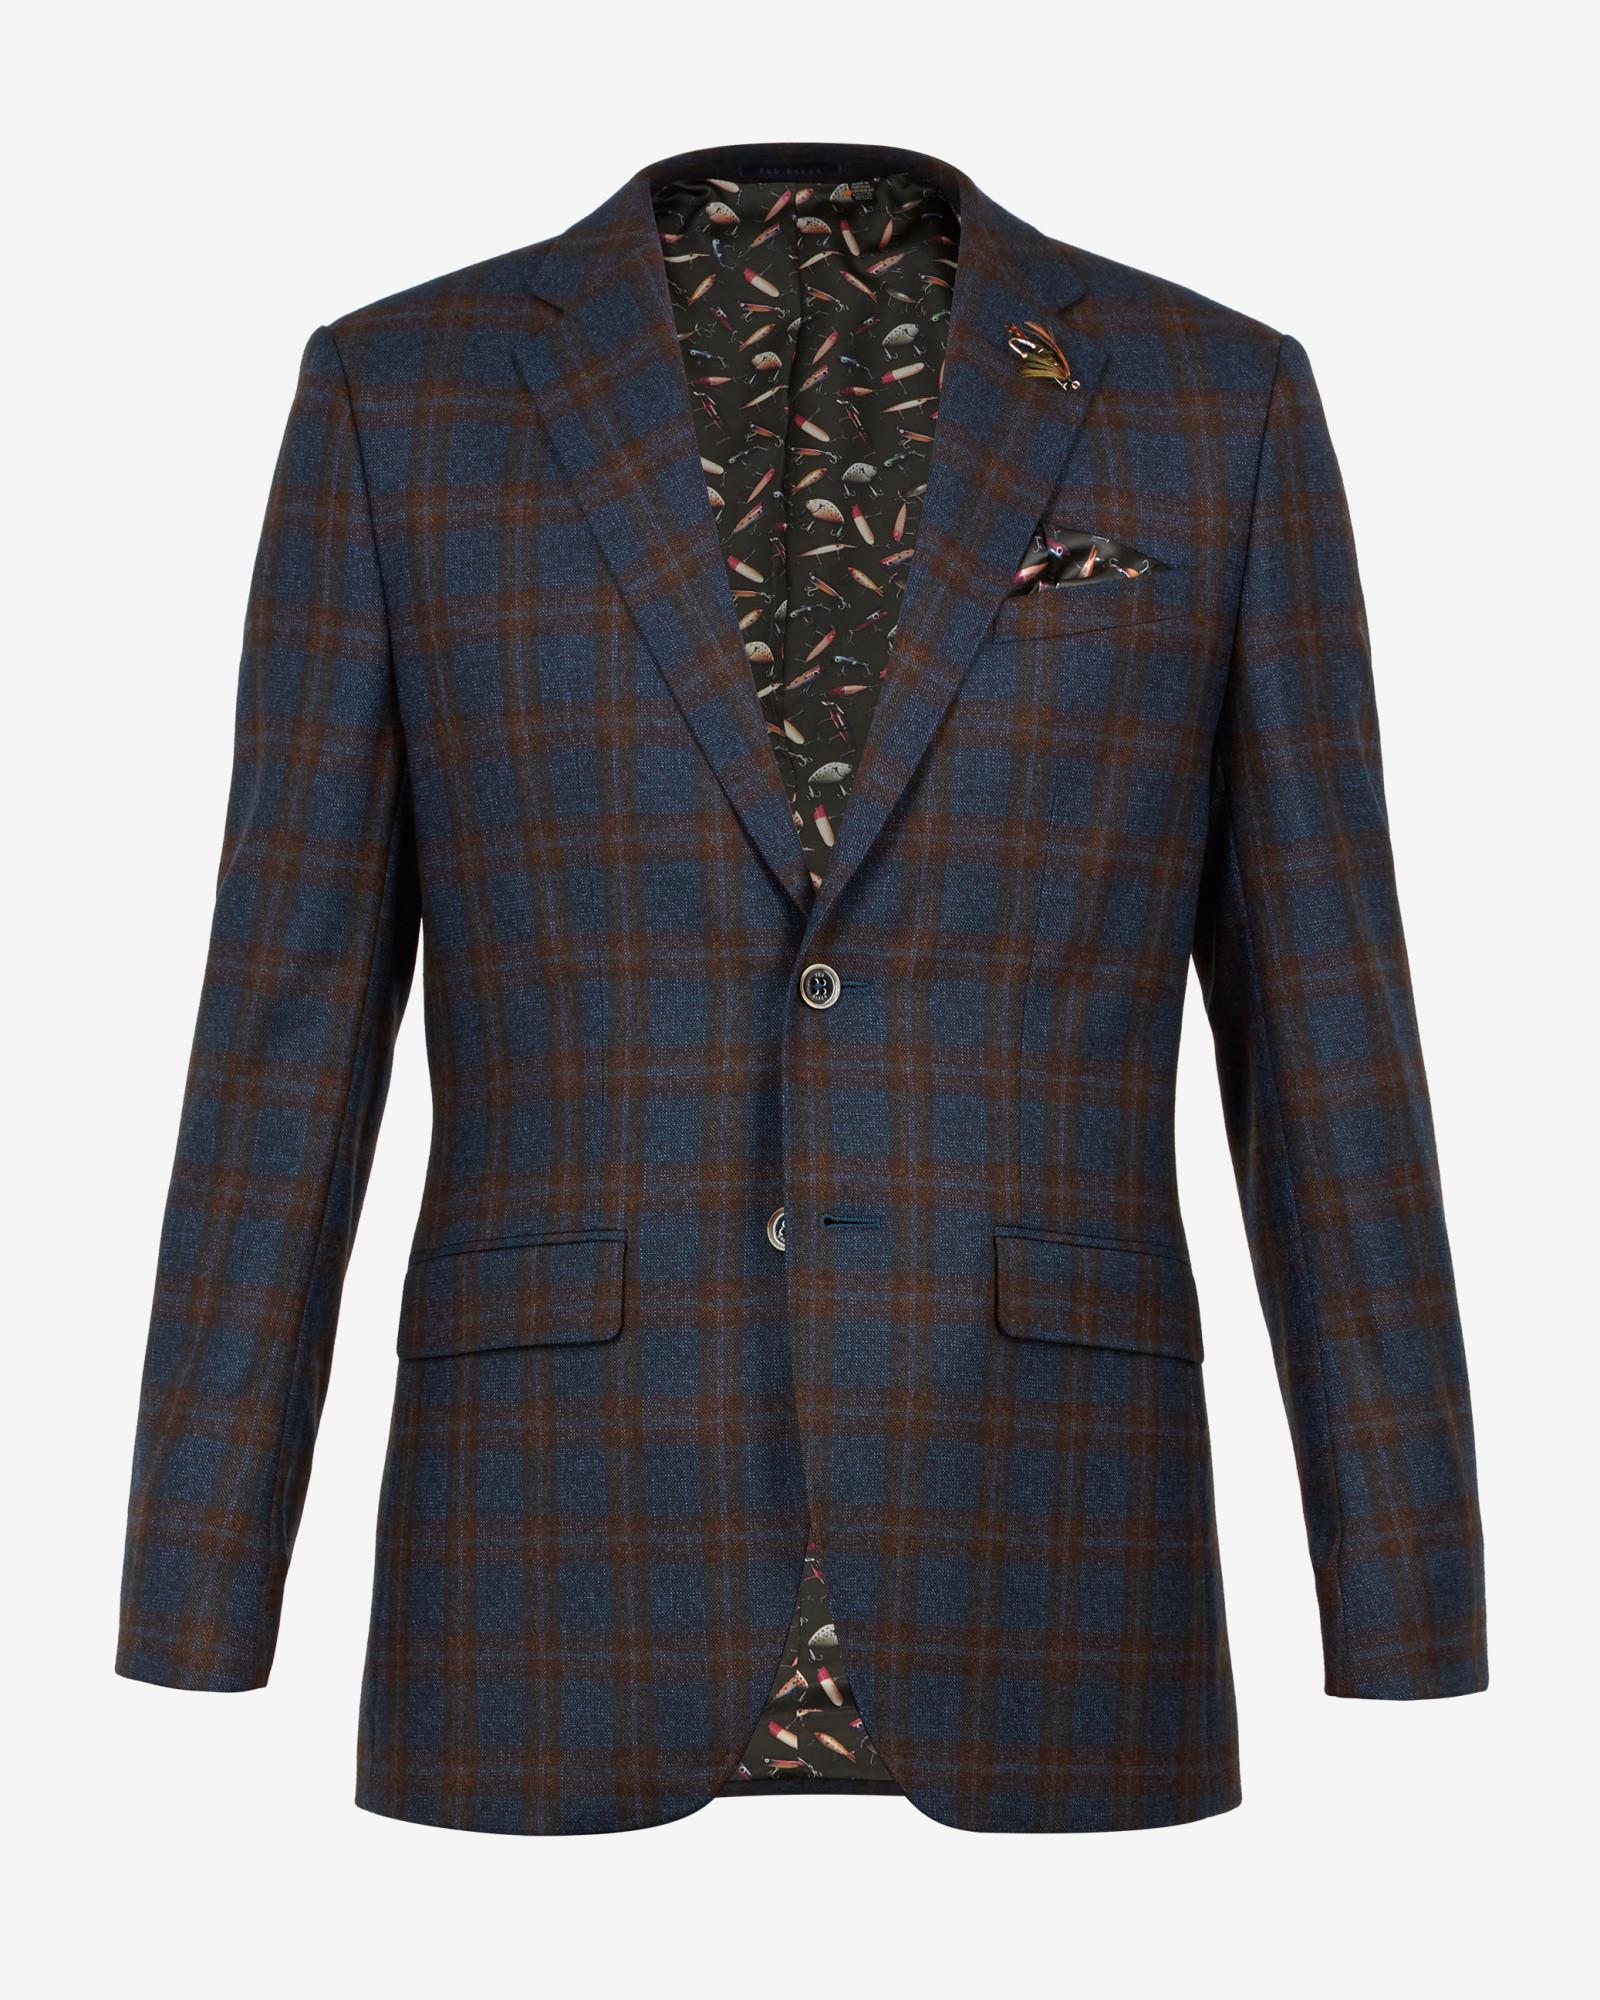 Ted Baker Wool Checked Suit Jacket in Teal (Blue) for Men